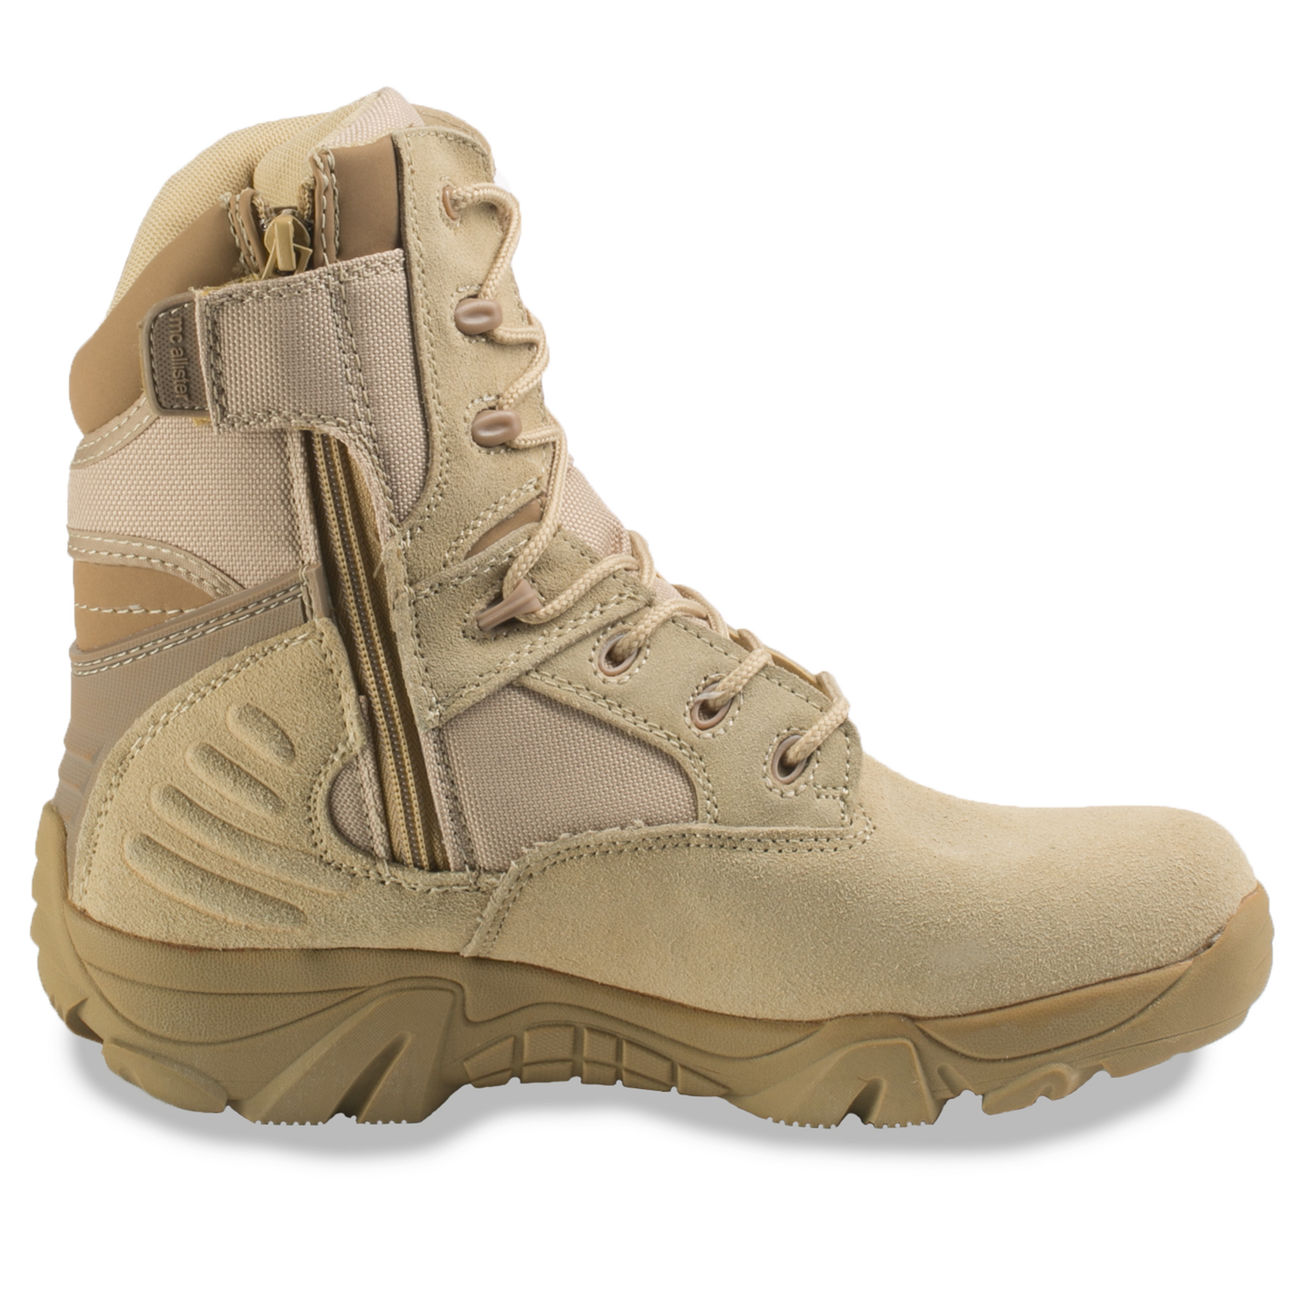 McAllister Stiefel Delta Force Tactical Outdoor Boots khaki 2